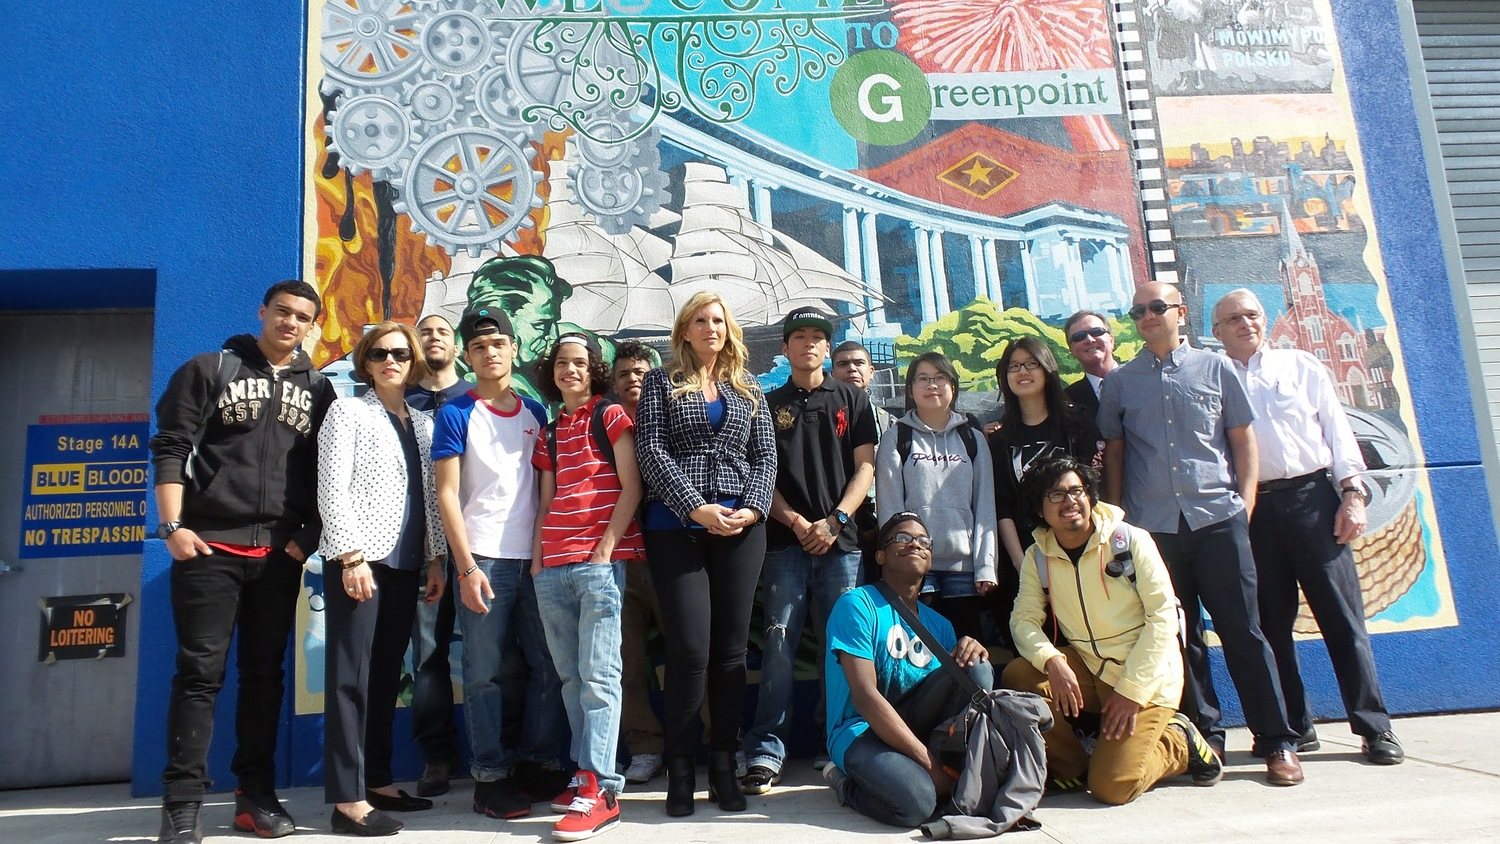 Broadway Stages president Gina Argento (center) and Participants of the Groundswell Community Mural Project